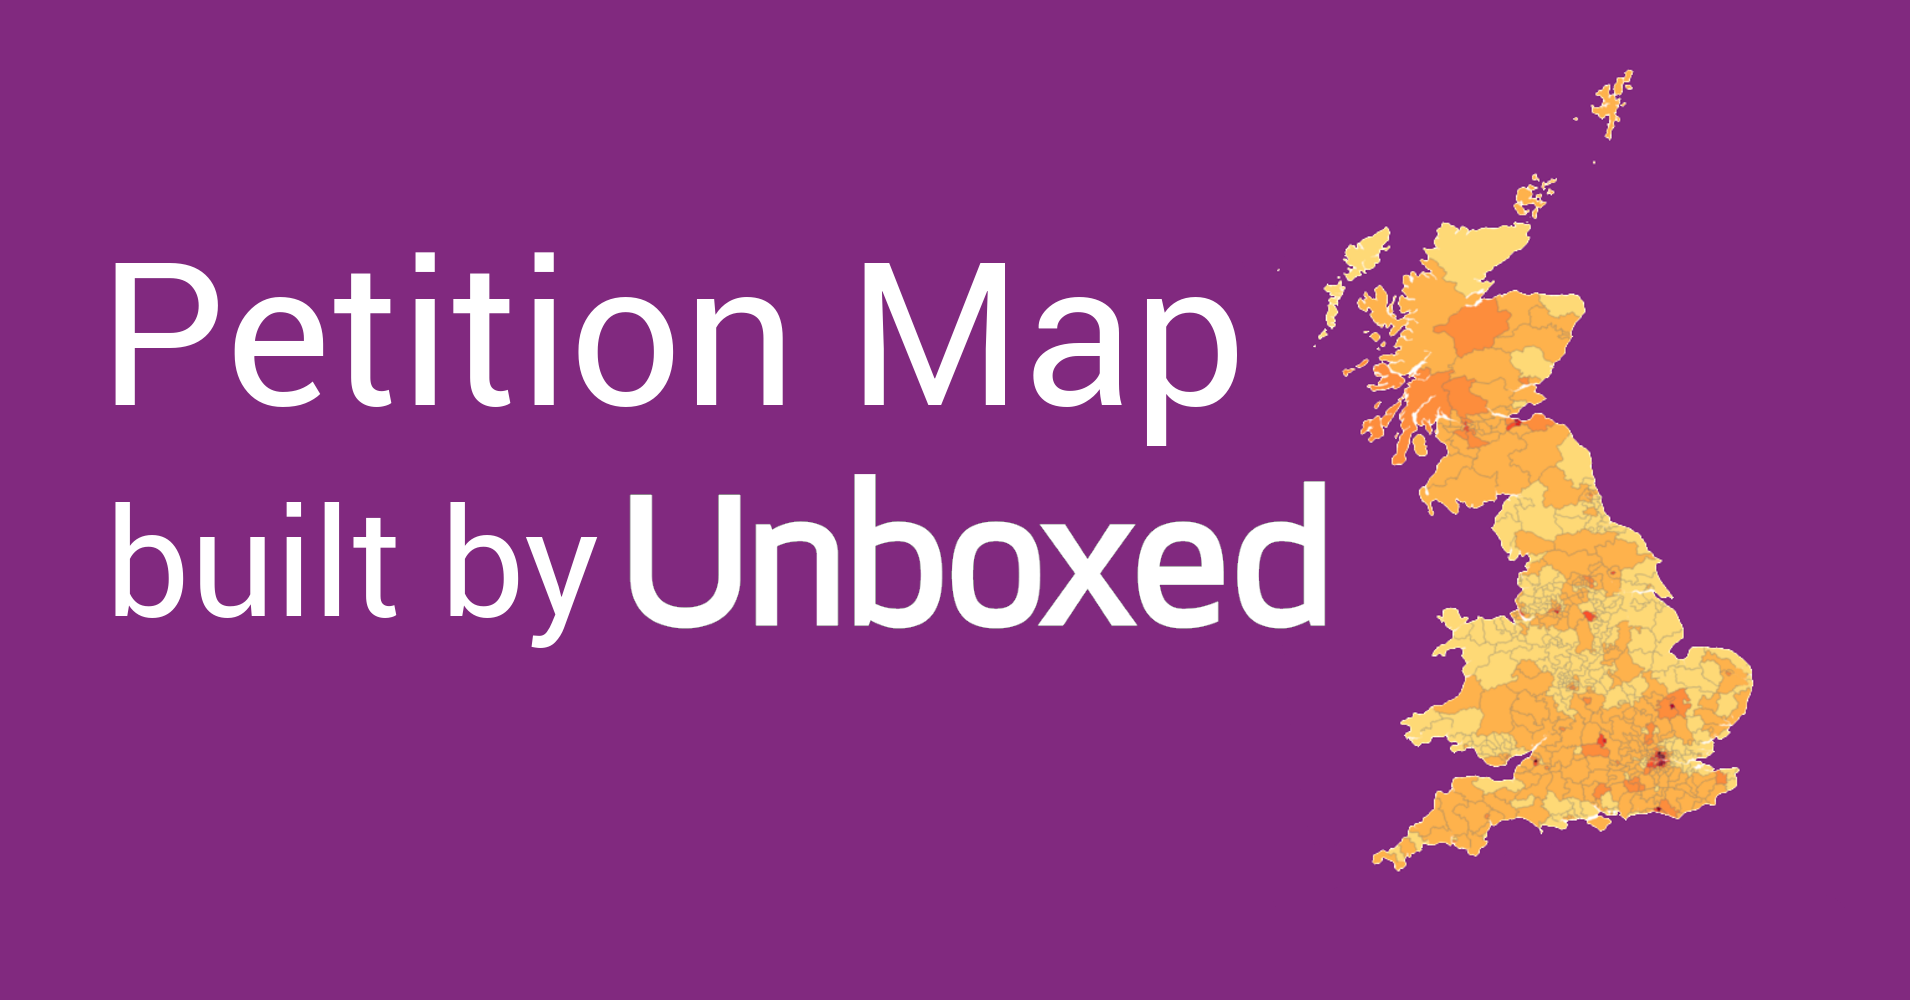 petitionmap.unboxedconsulting.com